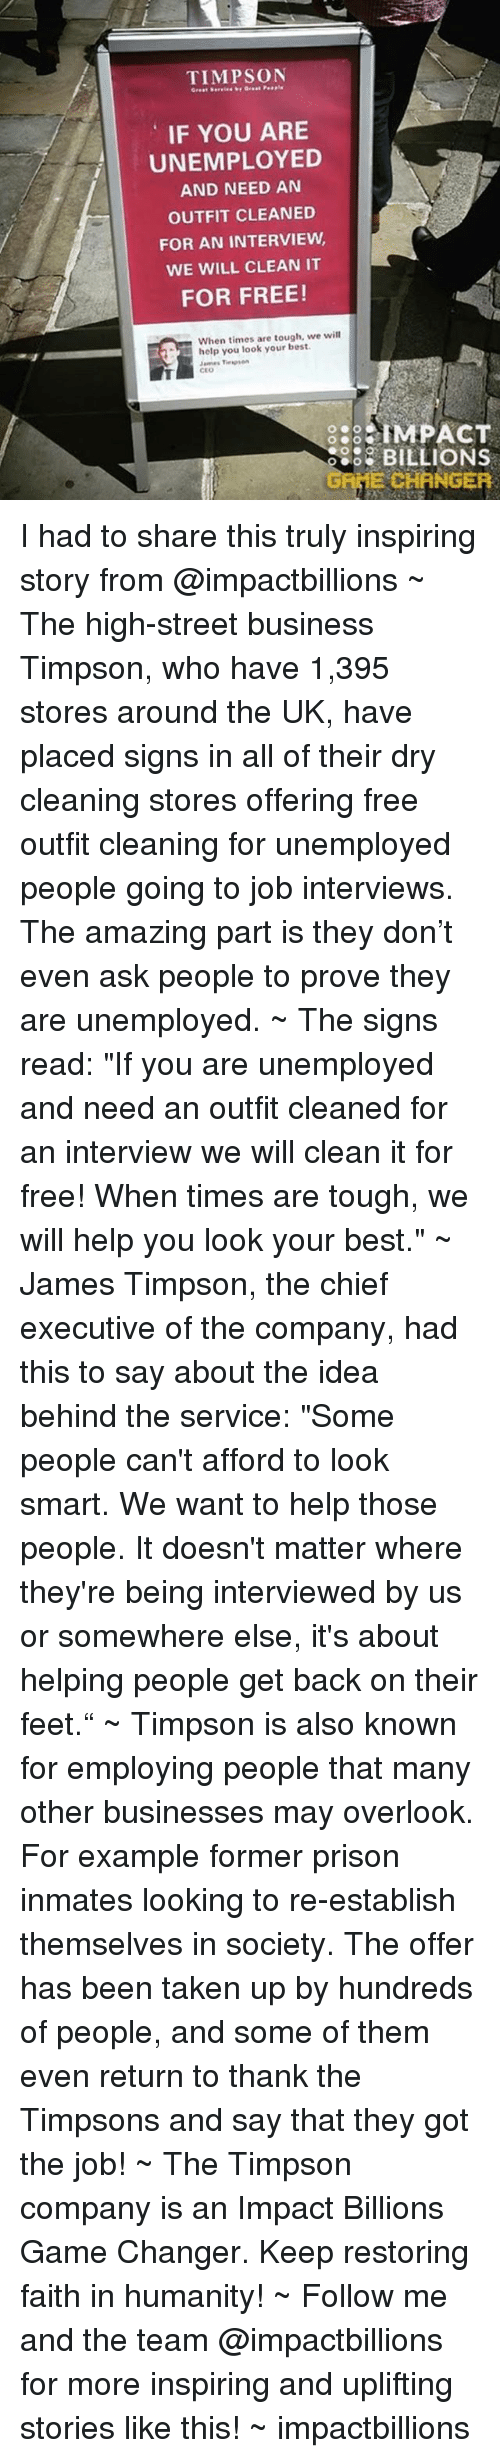 """Job Interview, Memes, and Game Changer: TIMPSON  IF YOU ARE  UNEMPLOYED  AND NEED AN  OUTFIT CLEANED  FOR AN INTERVIEW,  WE WILL CLEAN IT  FOR FREE!  When times are tough, we will  help you look your best.  James  888 IMPACT  BILLIONS  E CHANGER I had to share this truly inspiring story from @impactbillions ~ The high-street business Timpson, who have 1,395 stores around the UK, have placed signs in all of their dry cleaning stores offering free outfit cleaning for unemployed people going to job interviews. The amazing part is they don't even ask people to prove they are unemployed. ~ The signs read: """"If you are unemployed and need an outfit cleaned for an interview we will clean it for free! When times are tough, we will help you look your best."""" ~ James Timpson, the chief executive of the company, had this to say about the idea behind the service: """"Some people can't afford to look smart. We want to help those people. It doesn't matter where they're being interviewed by us or somewhere else, it's about helping people get back on their feet."""" ~ Timpson is also known for employing people that many other businesses may overlook. For example former prison inmates looking to re-establish themselves in society. The offer has been taken up by hundreds of people, and some of them even return to thank the Timpsons and say that they got the job! ~ The Timpson company is an Impact Billions Game Changer. Keep restoring faith in humanity! ~ Follow me and the team @impactbillions for more inspiring and uplifting stories like this! ~ impactbillions"""